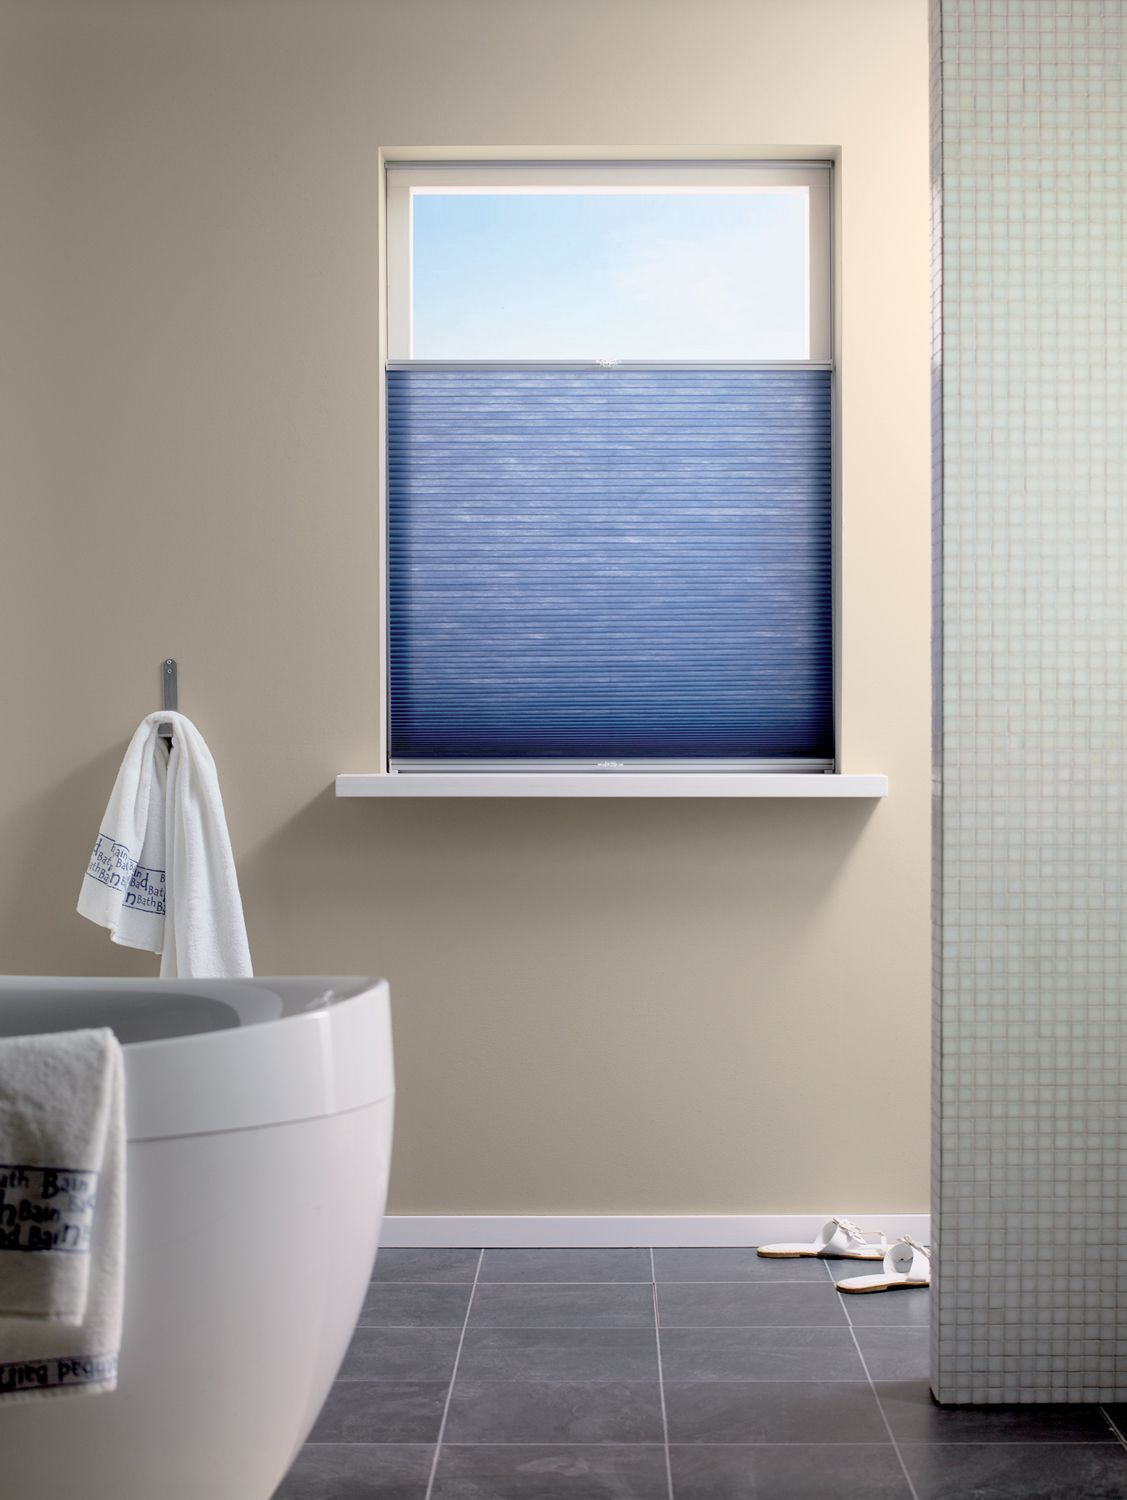 Blue Duette Bathroom Blind From Apollo Blinds Energy Saving Blinds Blue Blinds Bathroom Blinds Contemporary Bathroom Blinds Curtains With Blinds Diy Blinds [ jpg ]